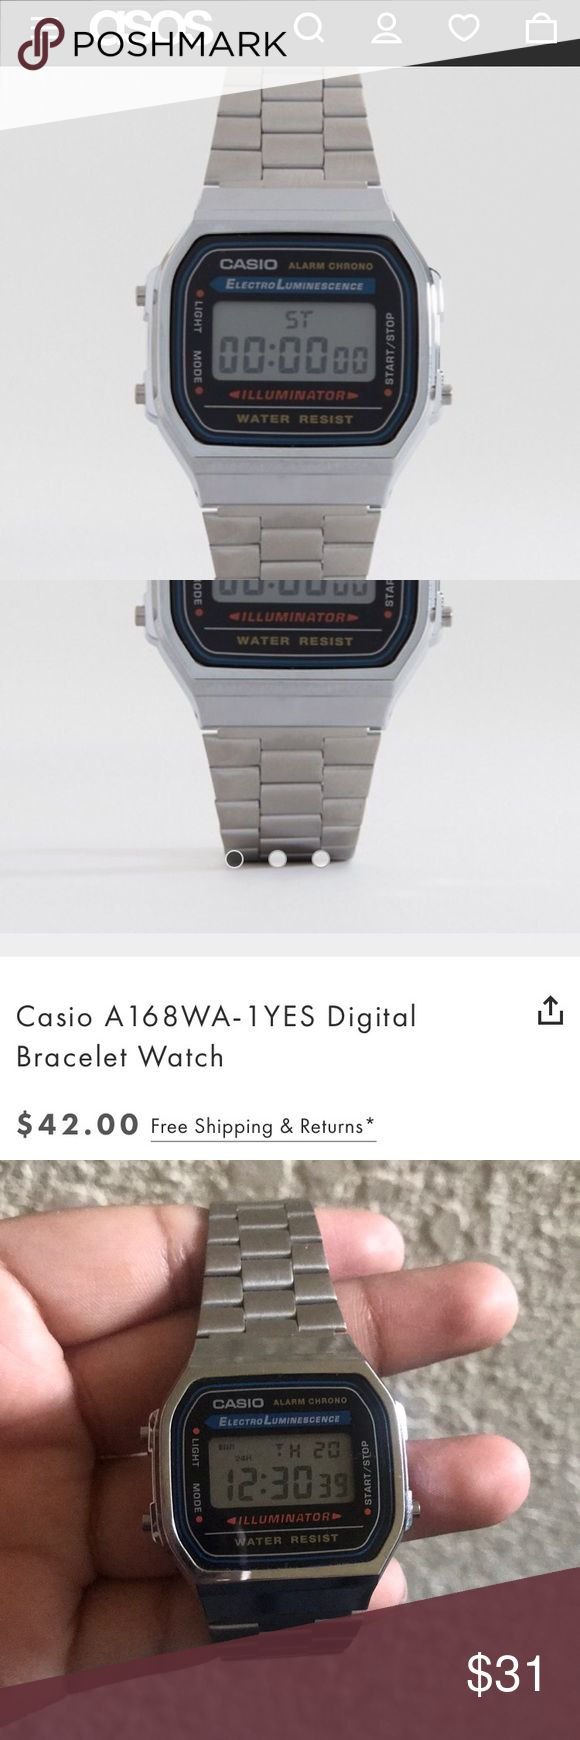 CASIO Silver Watch w/ Backlight Chic and stylish men's wear looking watch that is in great condition. Worn once and it still works! Feel free to make an offer through the offer button :) Casio Accessories Watches